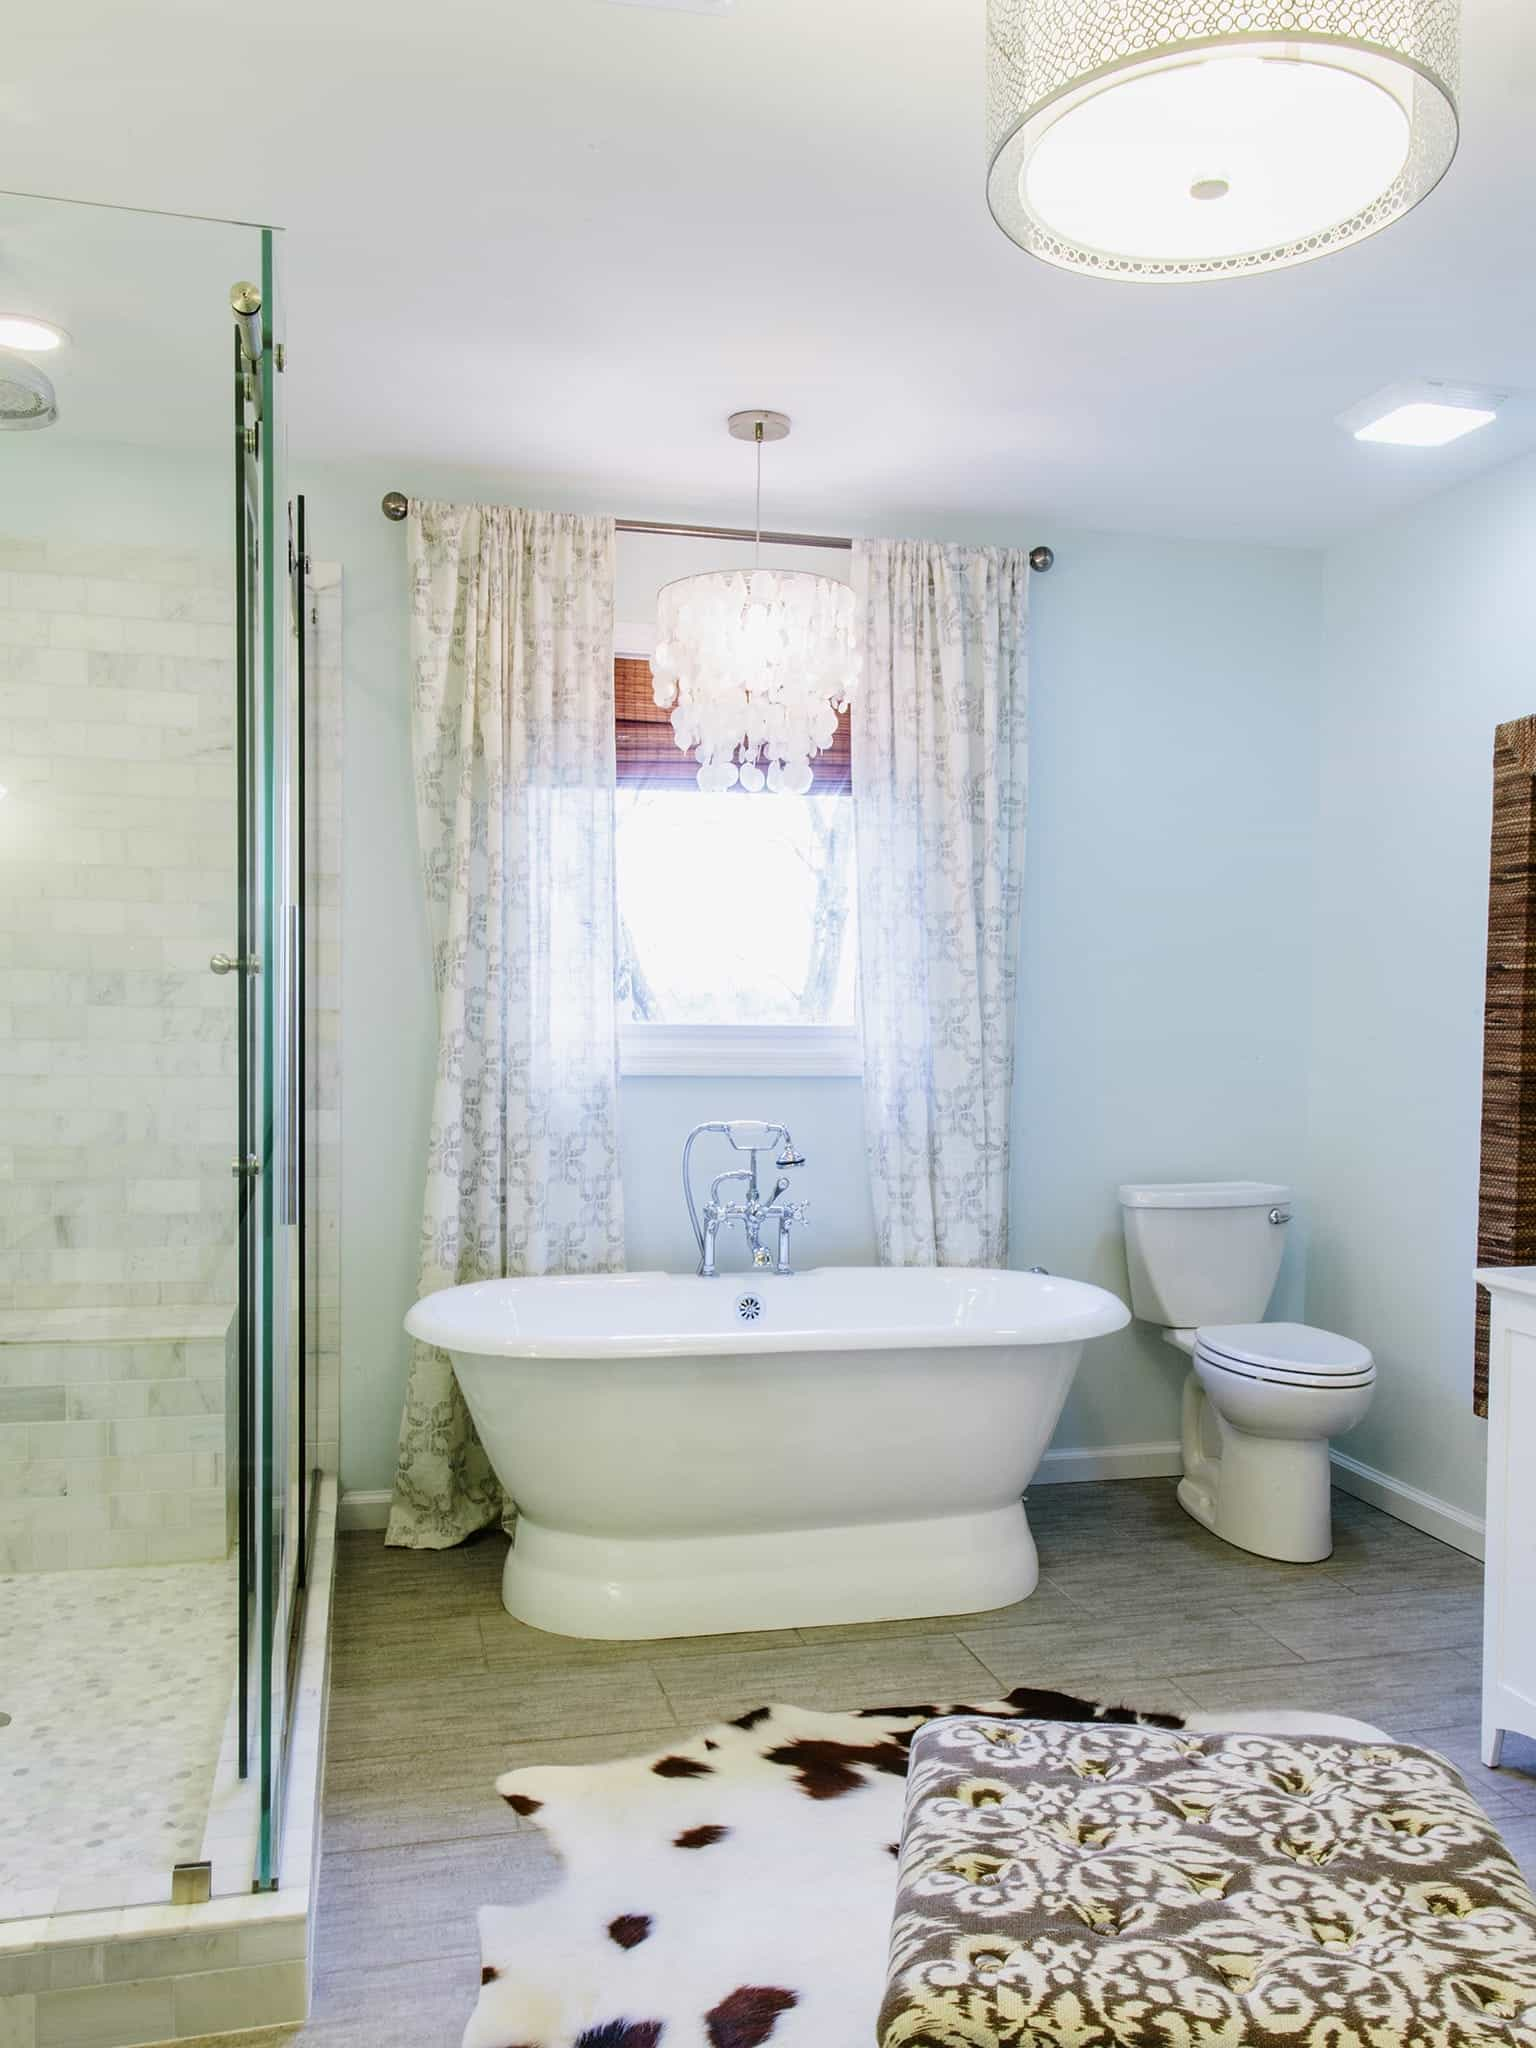 Cute Rug For Light Blue Bathroom With Freestanding Tub (Image 6 of 11)